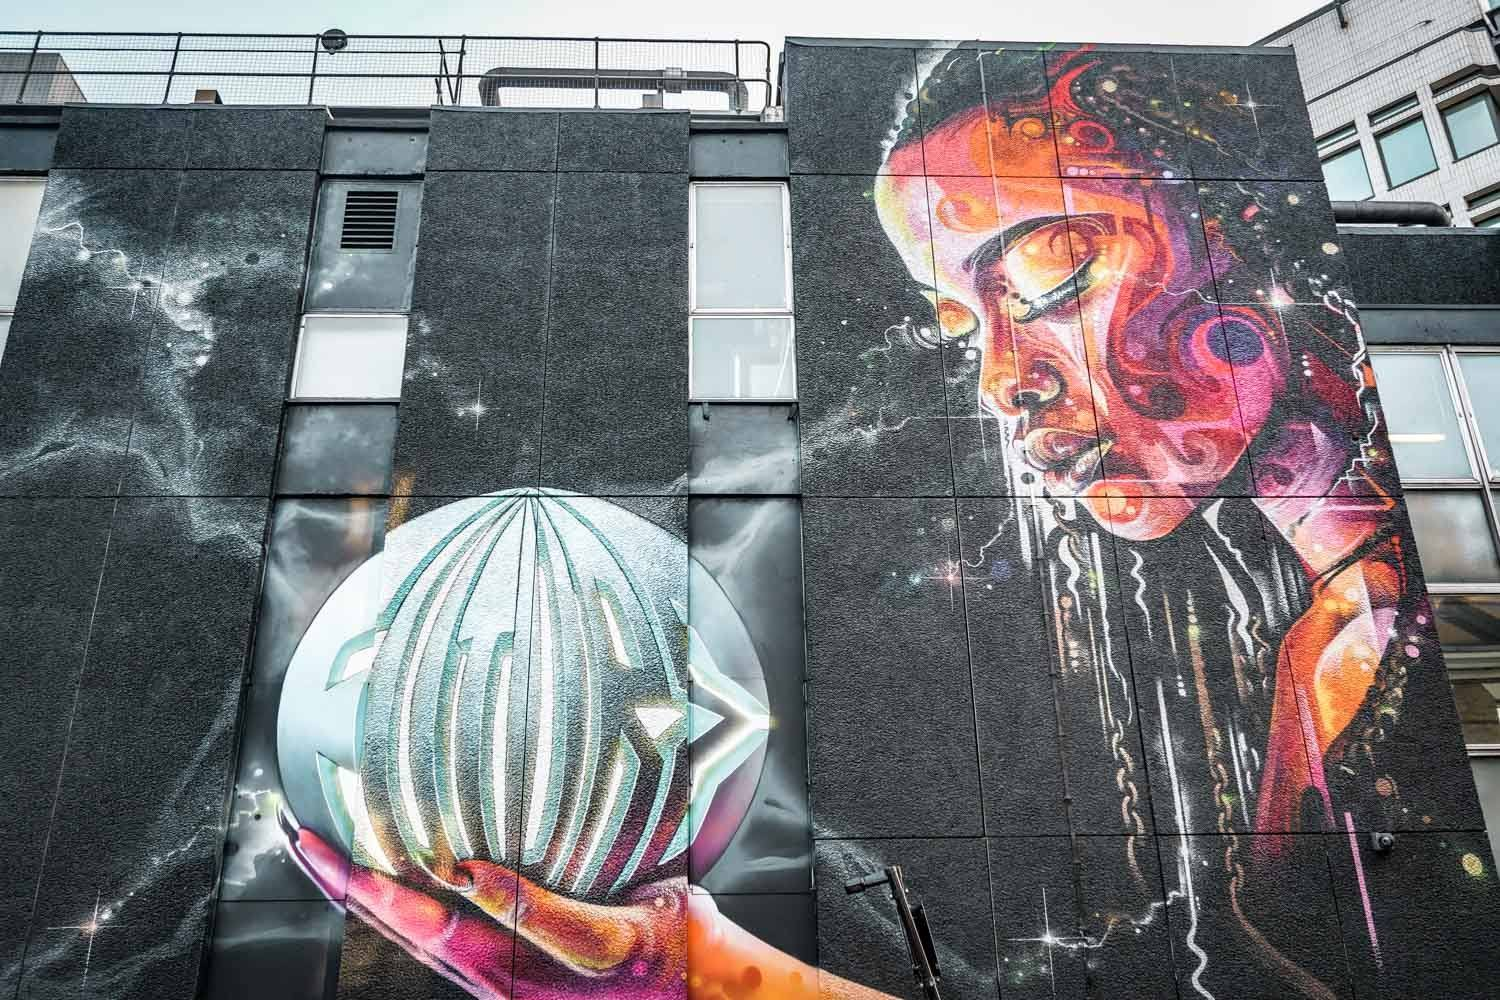 Mr Cenz + Lovepusher Street Art in London